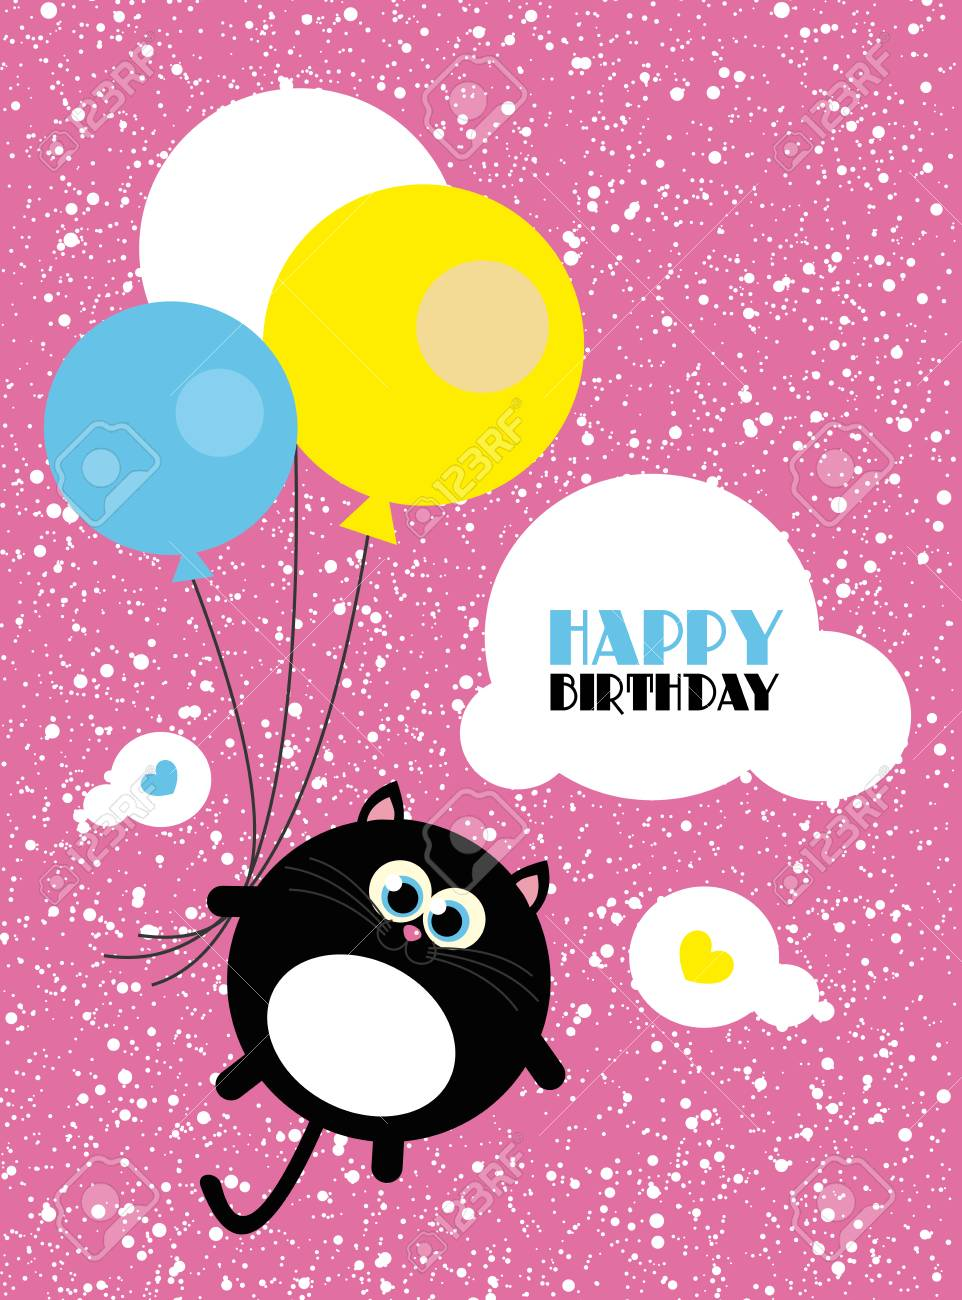 Cute Creative Cards Templates With Happy Birthday Theme Design Hand Drawn Card For